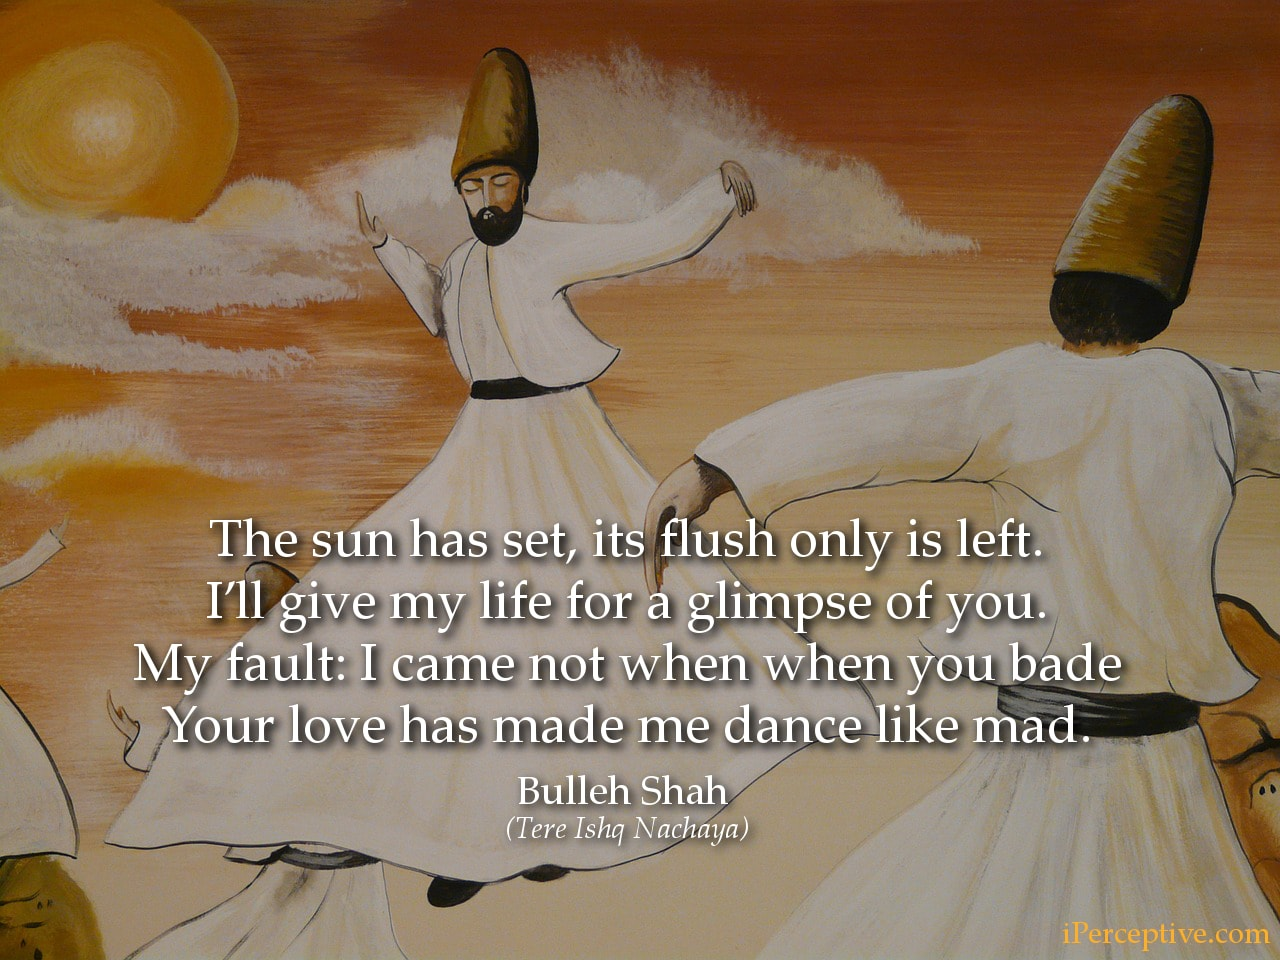 Sufi Quotes And Poems Islamic Mysticism Iperceptive